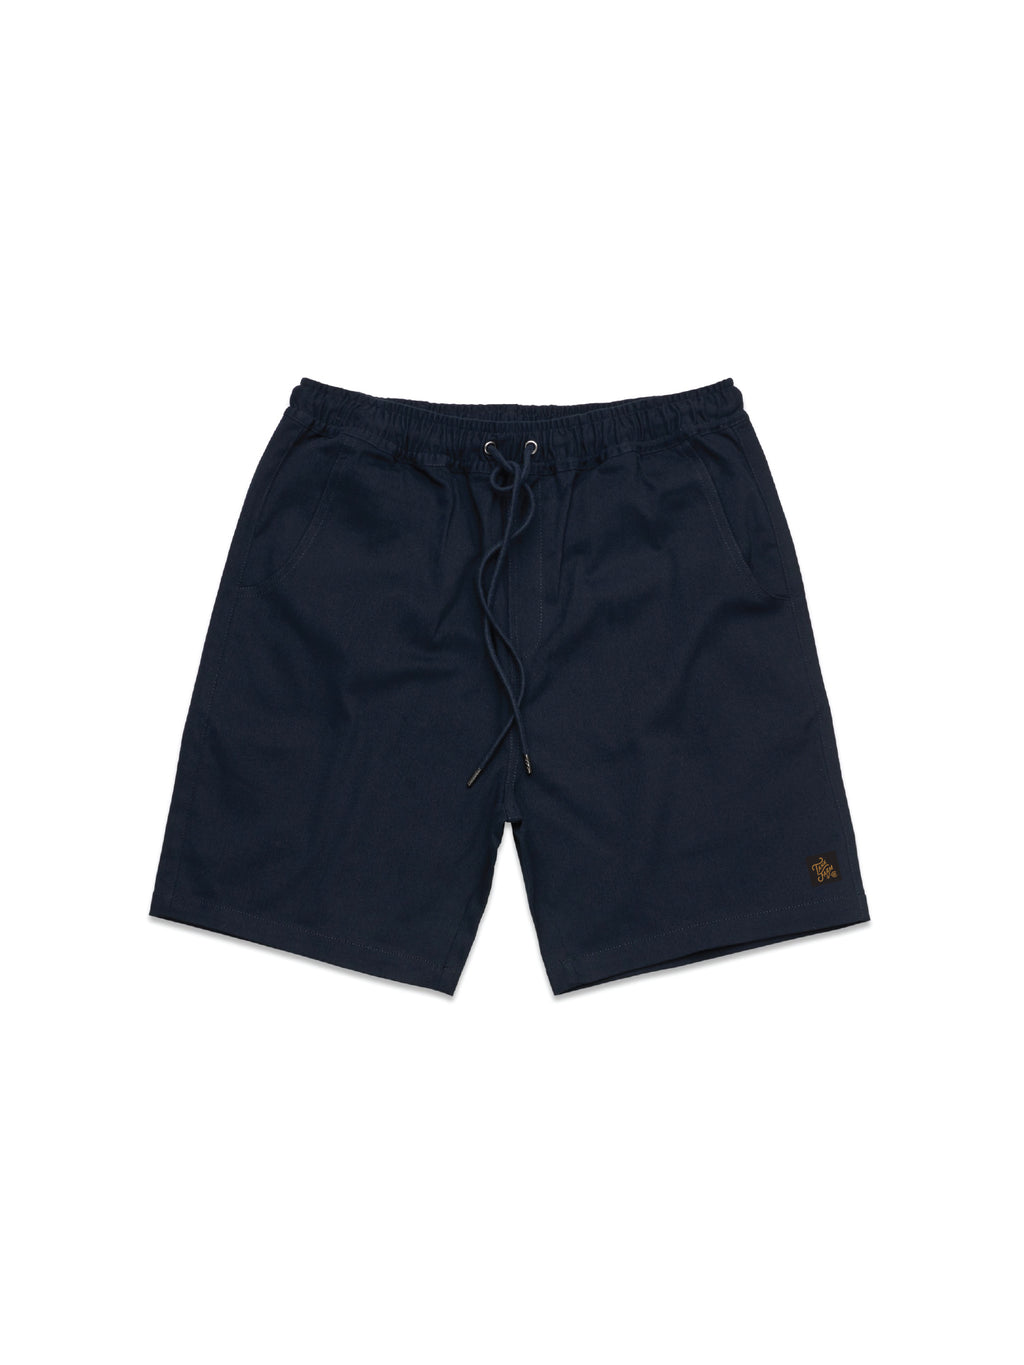 THE WALK SHORTS- NAVY - Tankfarm & Co.